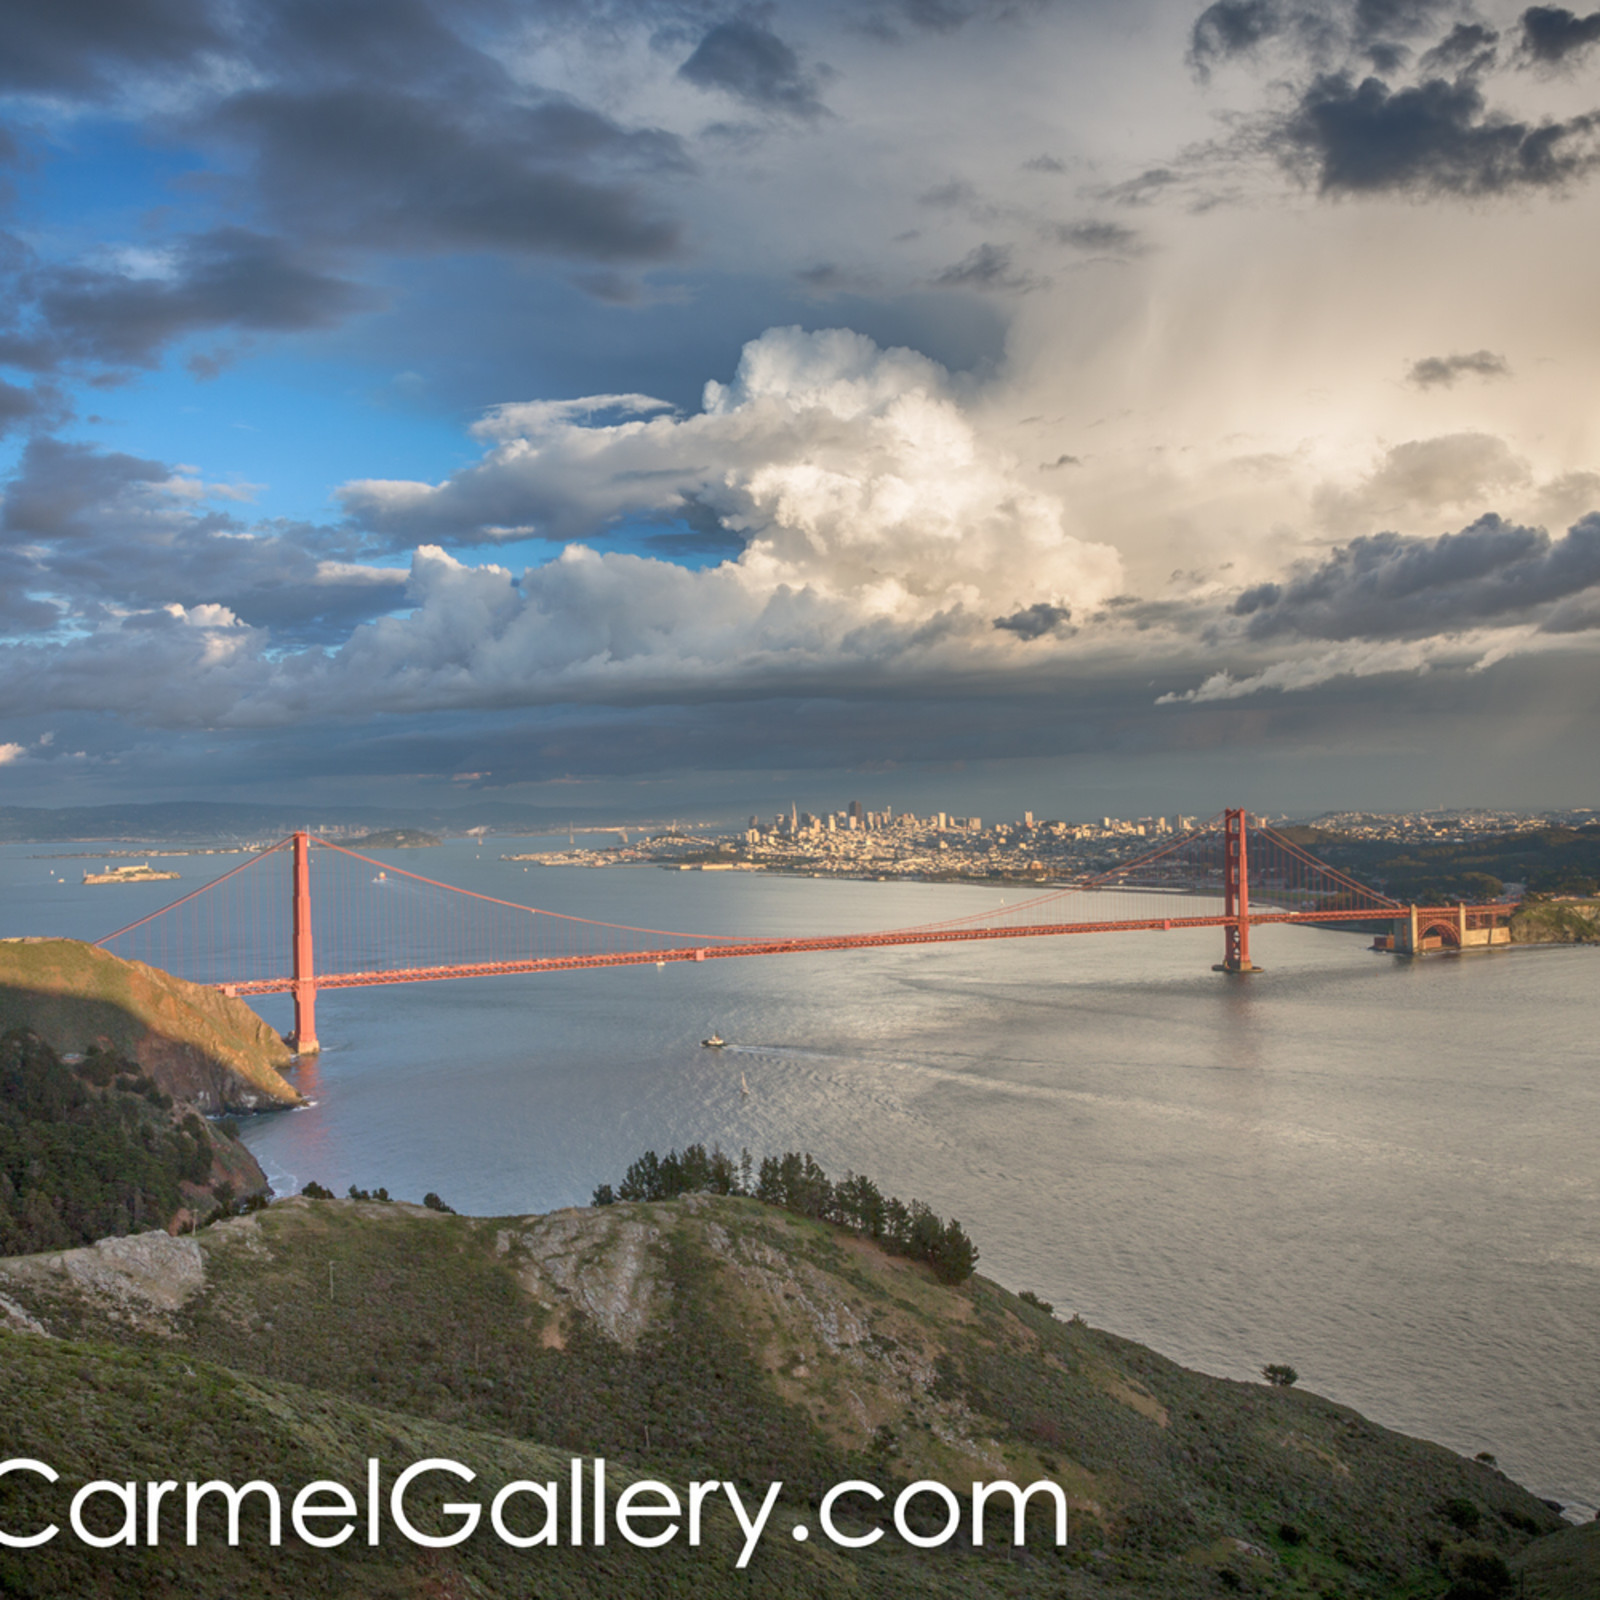 Clearing storm golden gate iblzb9